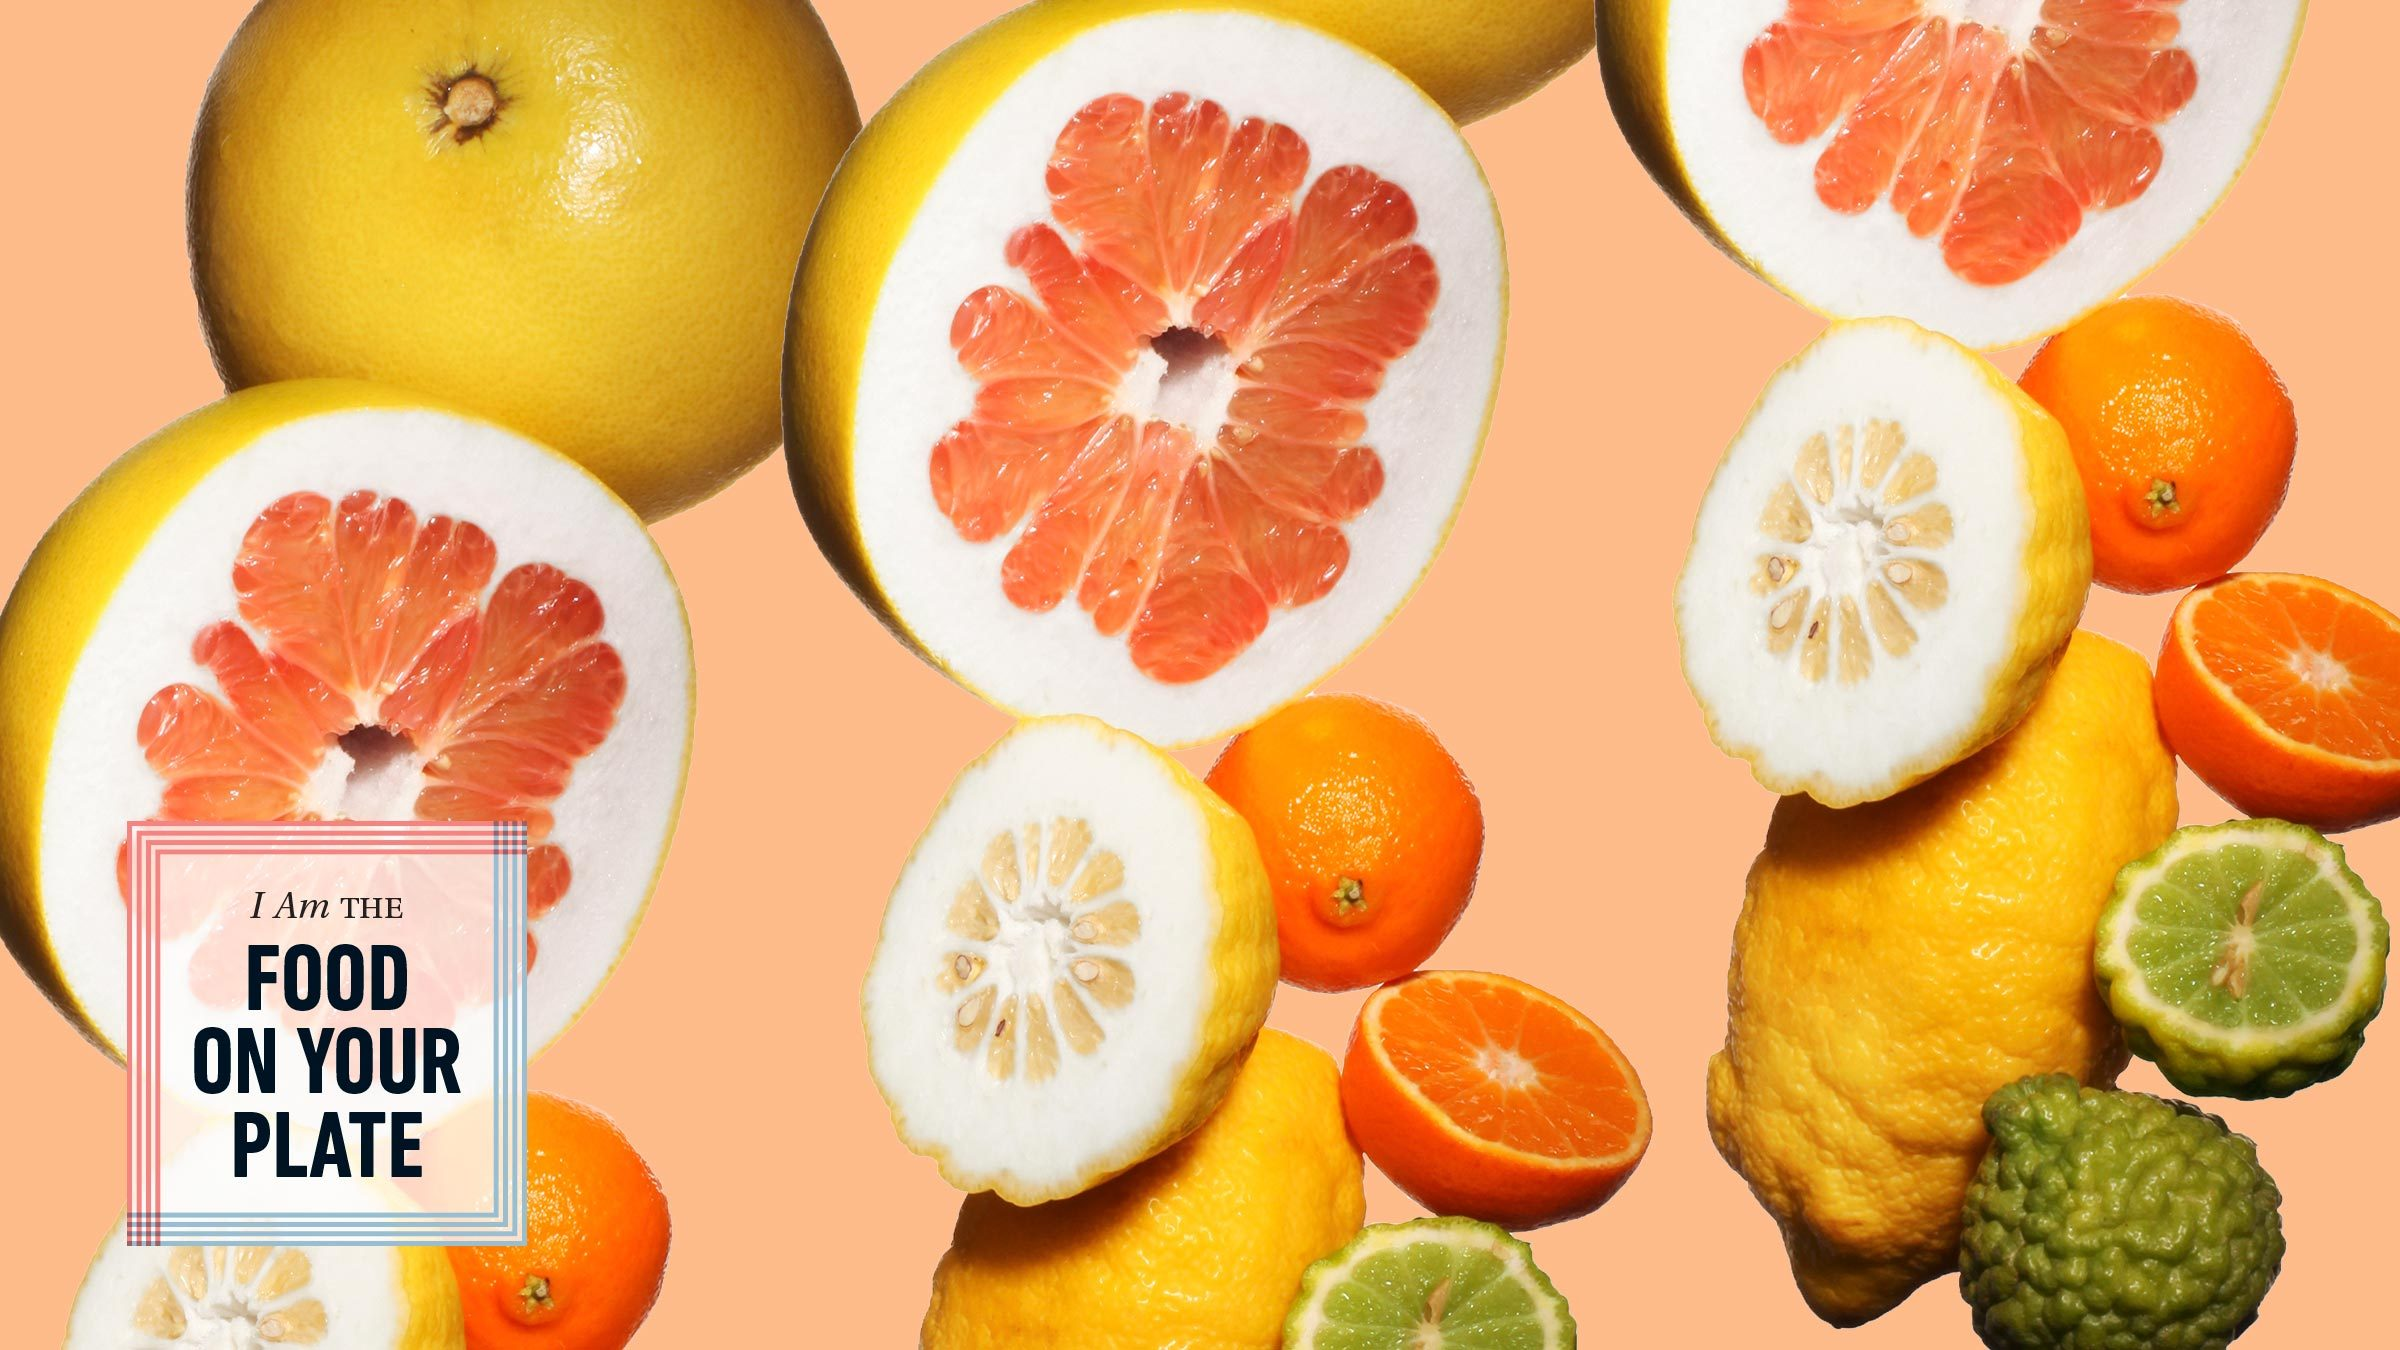 various citrus fruits on orange background